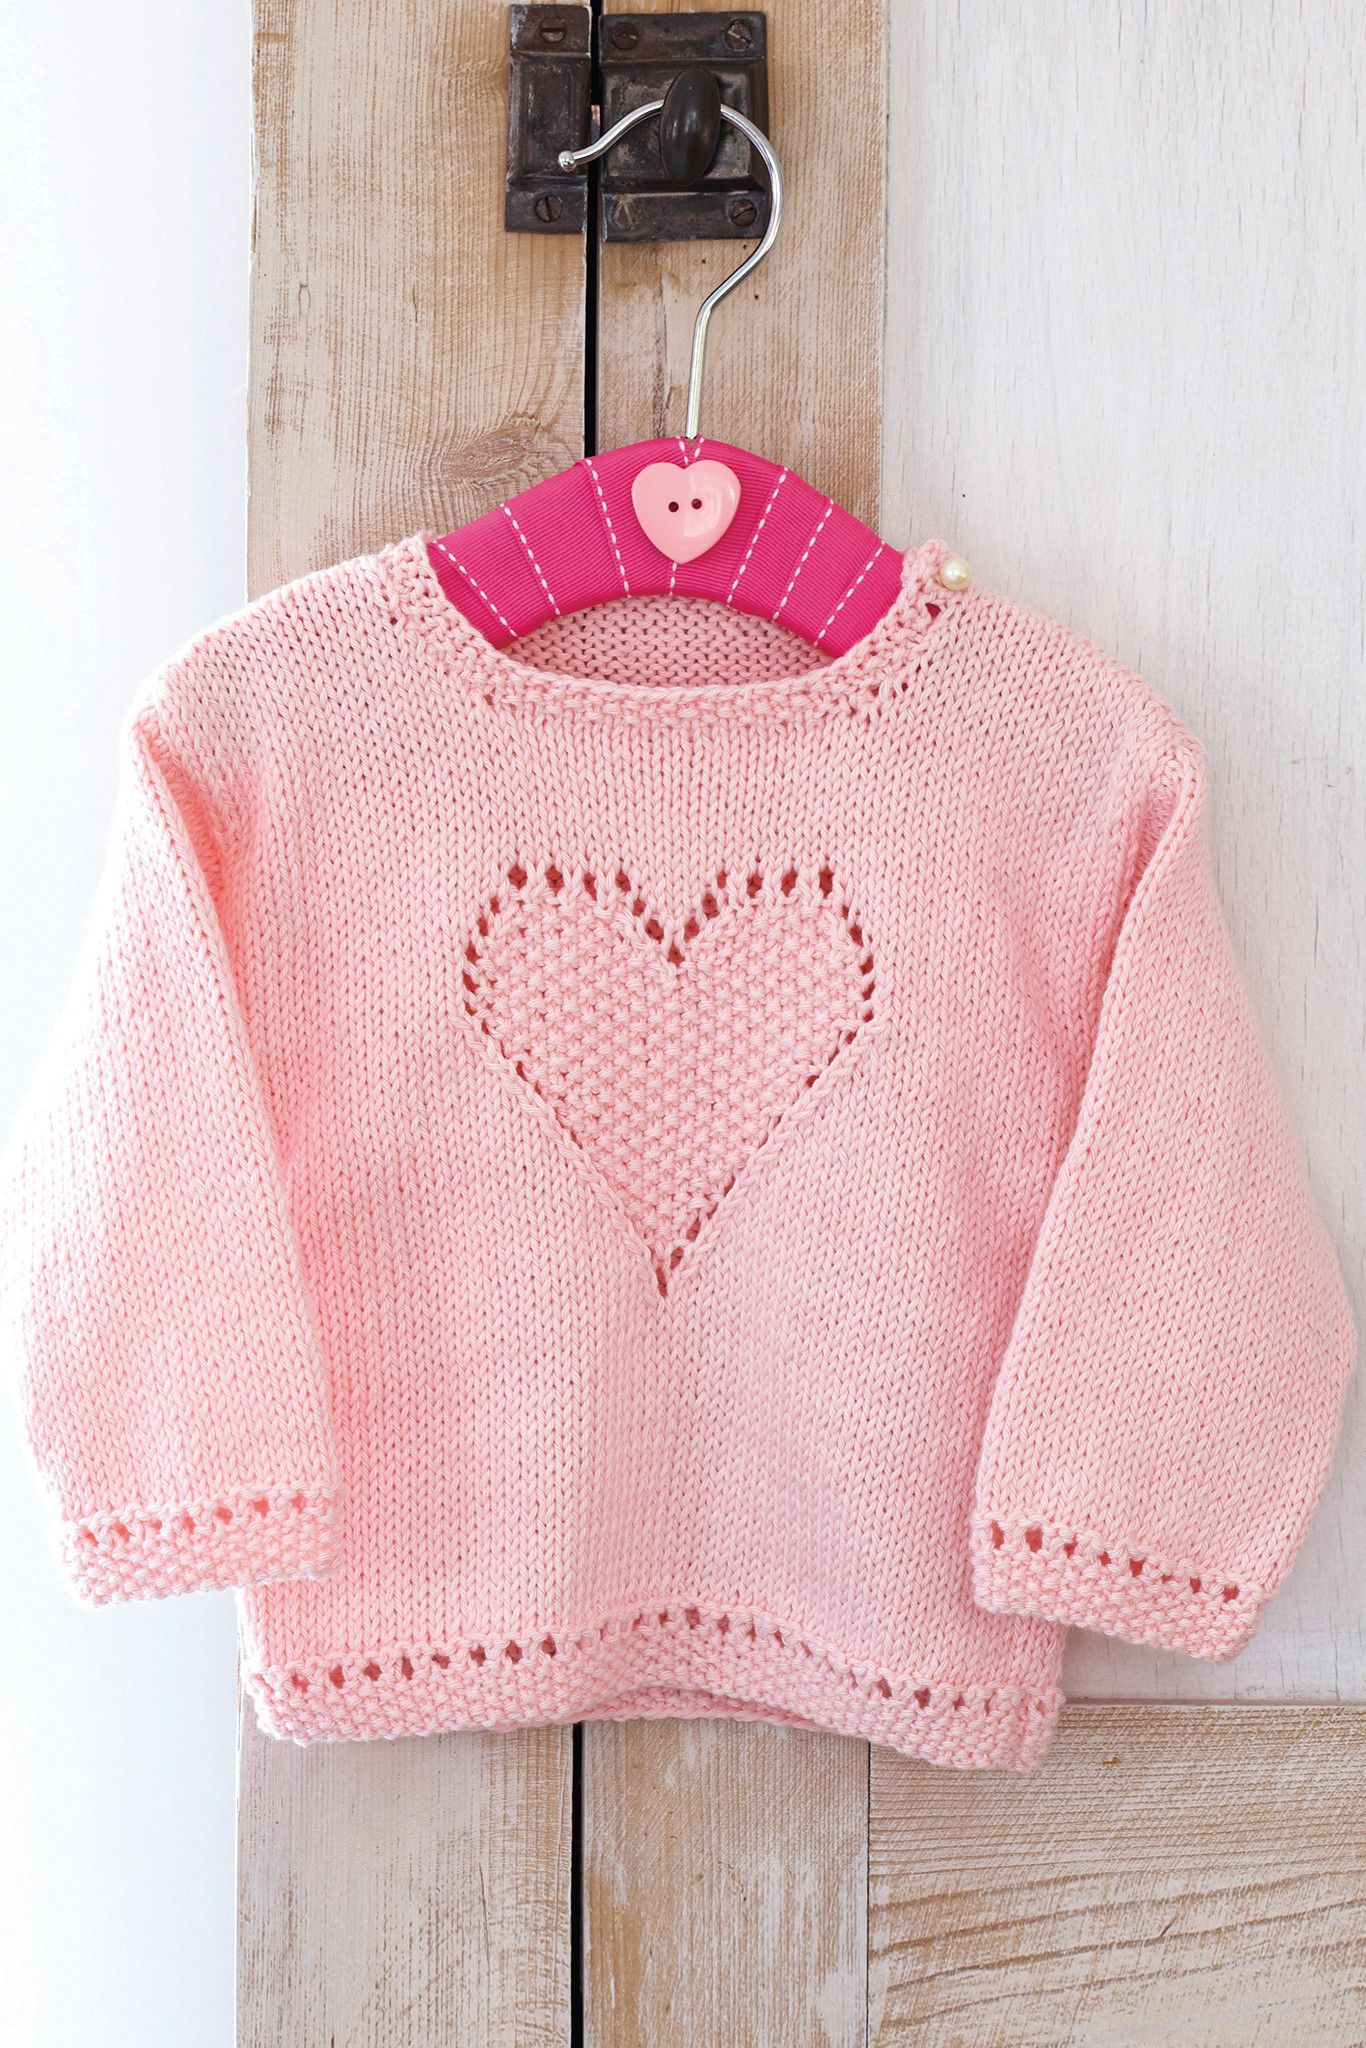 Knitted Moss Stitch Dishcloth Pattern : Knitted pink sweater for little girls with heart design on front knitting ...